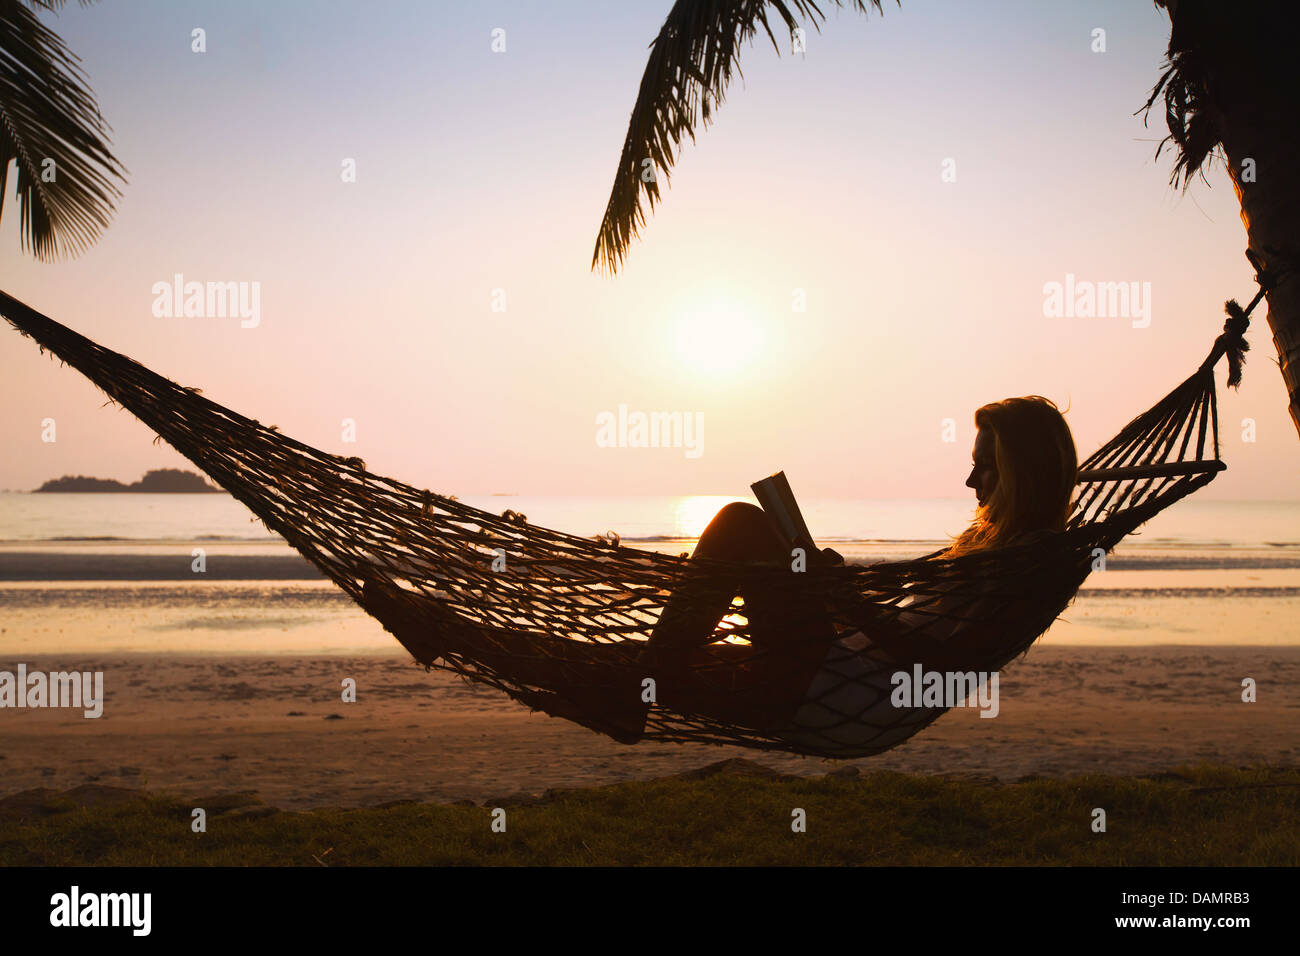 Silhouette of woman relaxing in hammock sur la plage Photo Stock